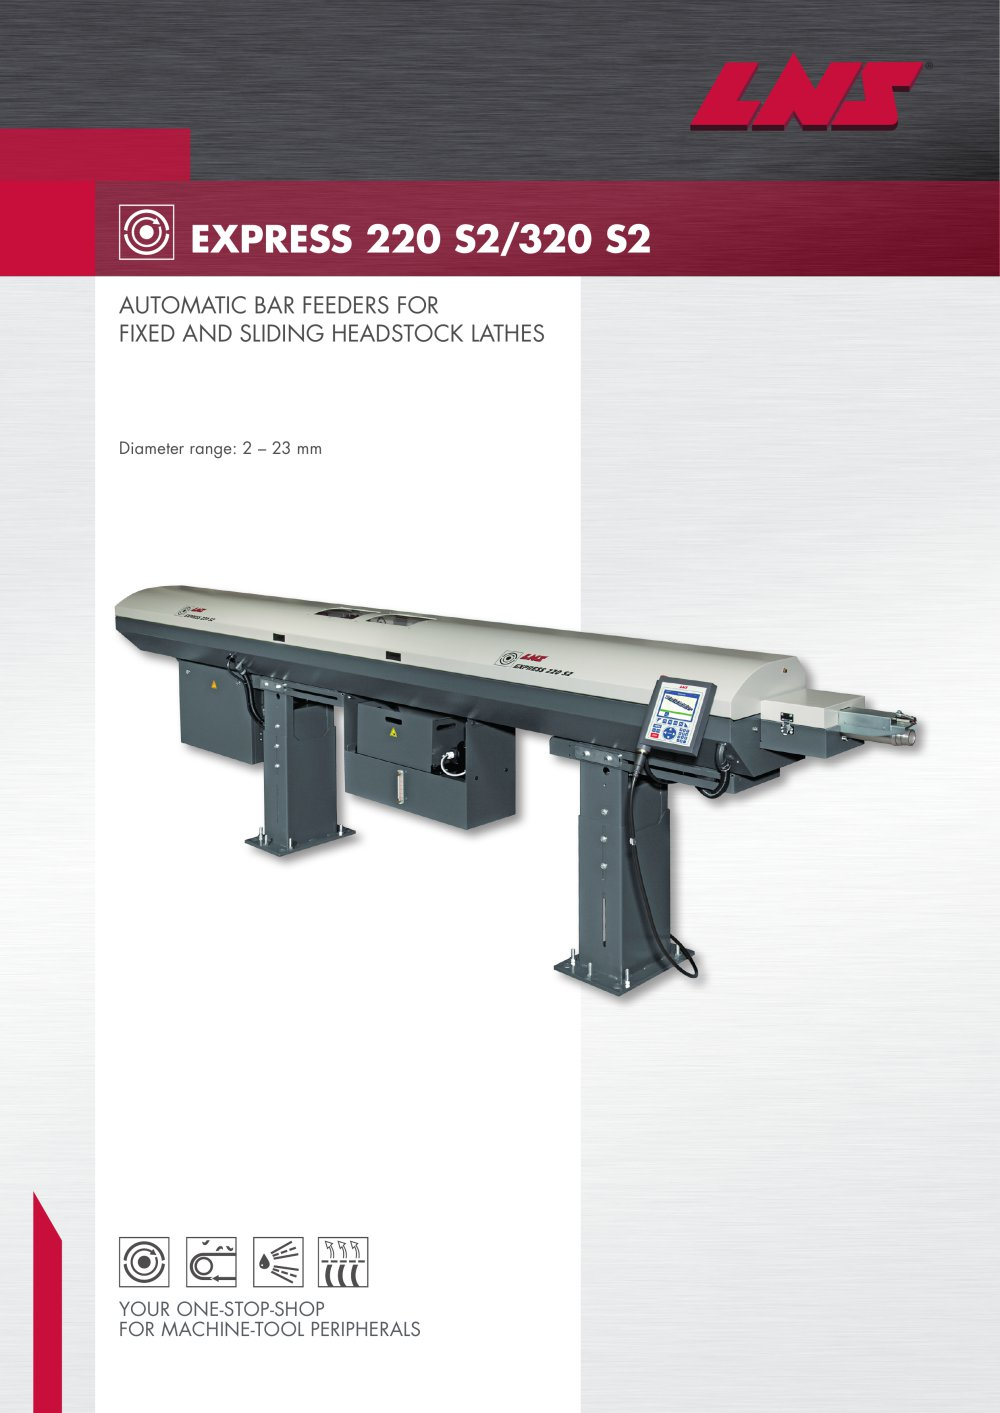 Express 220 S2 - 1 / 4 Pages